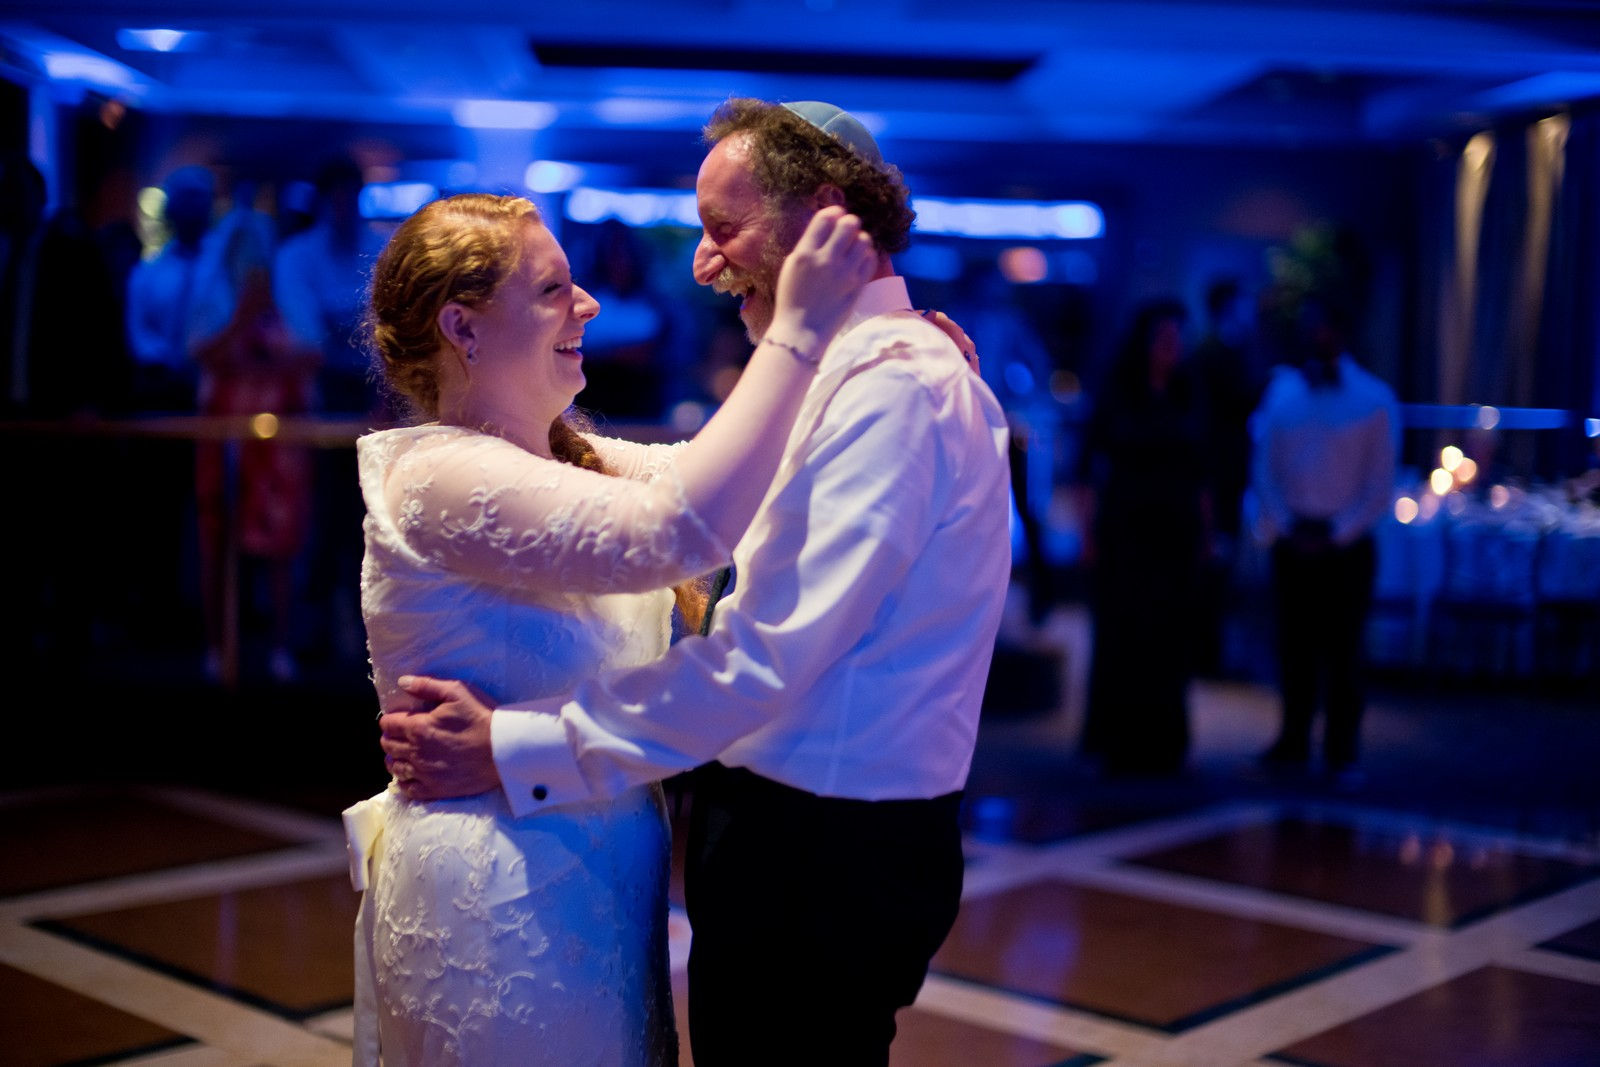 Sam and Yishai's Modern Orthodox Jewish Wedding at Crest Hollow Country Club, Woodbury NY, Photos by Chaim Schvarcz, Bride, Father of the Bride, Father Daughter Dance